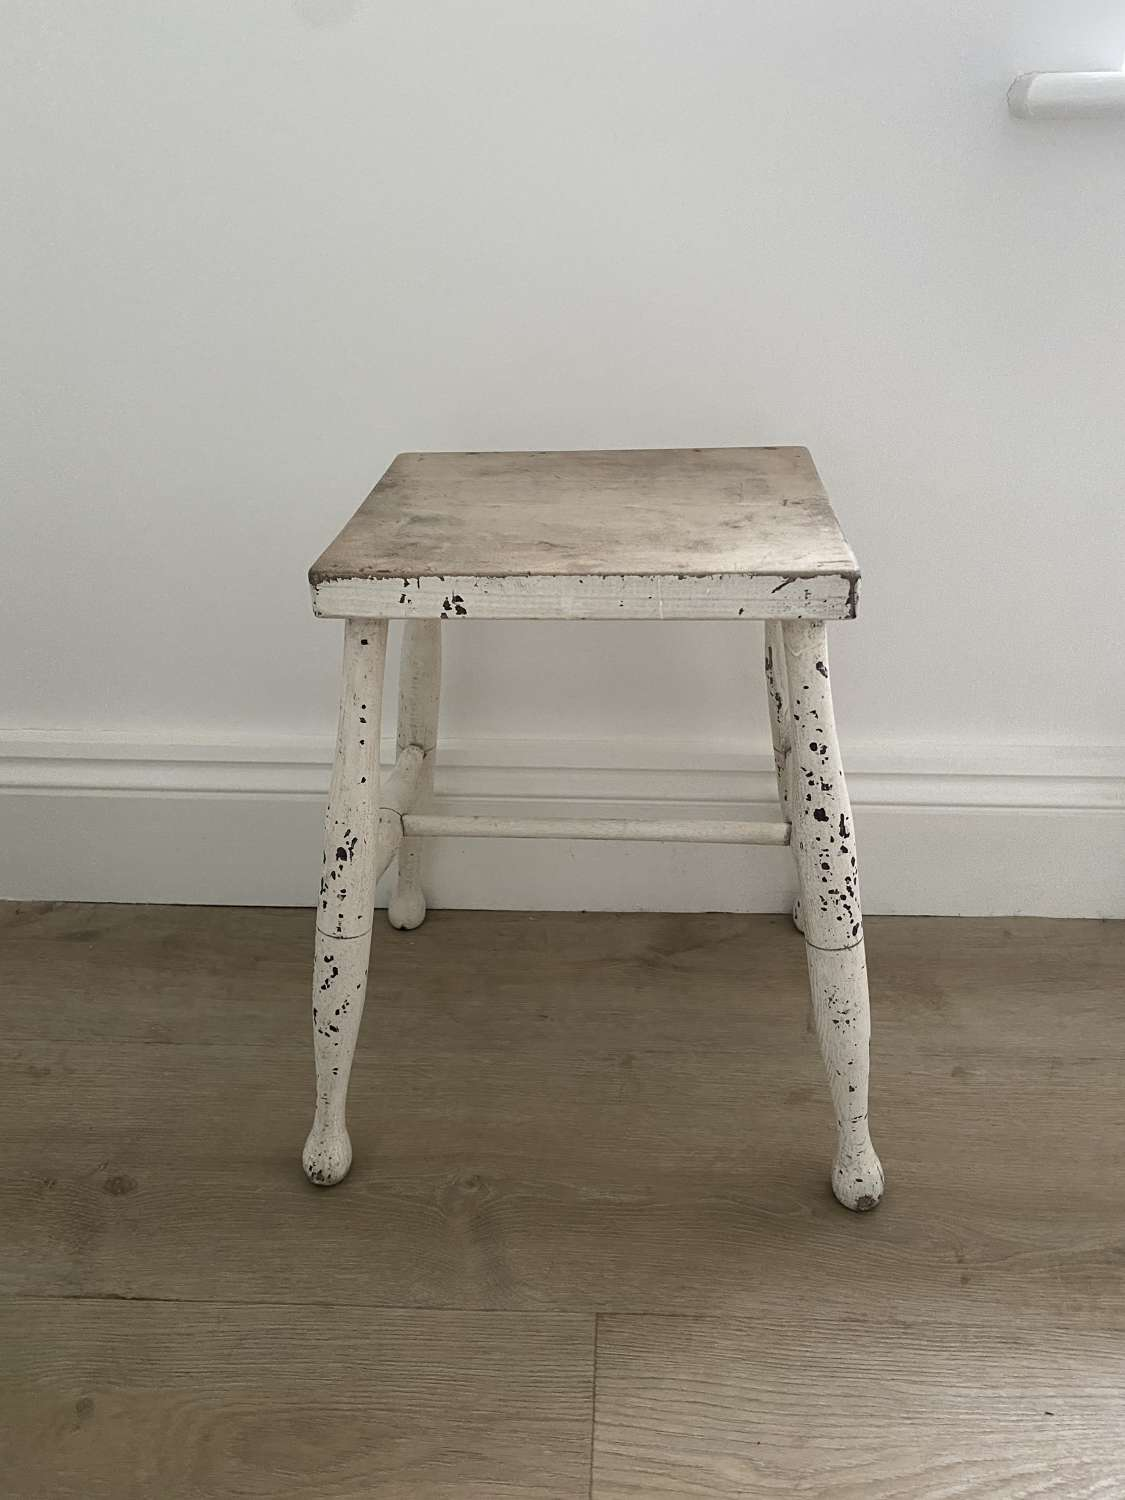 Antique Stool - Sofa Side Table - Original White Paint